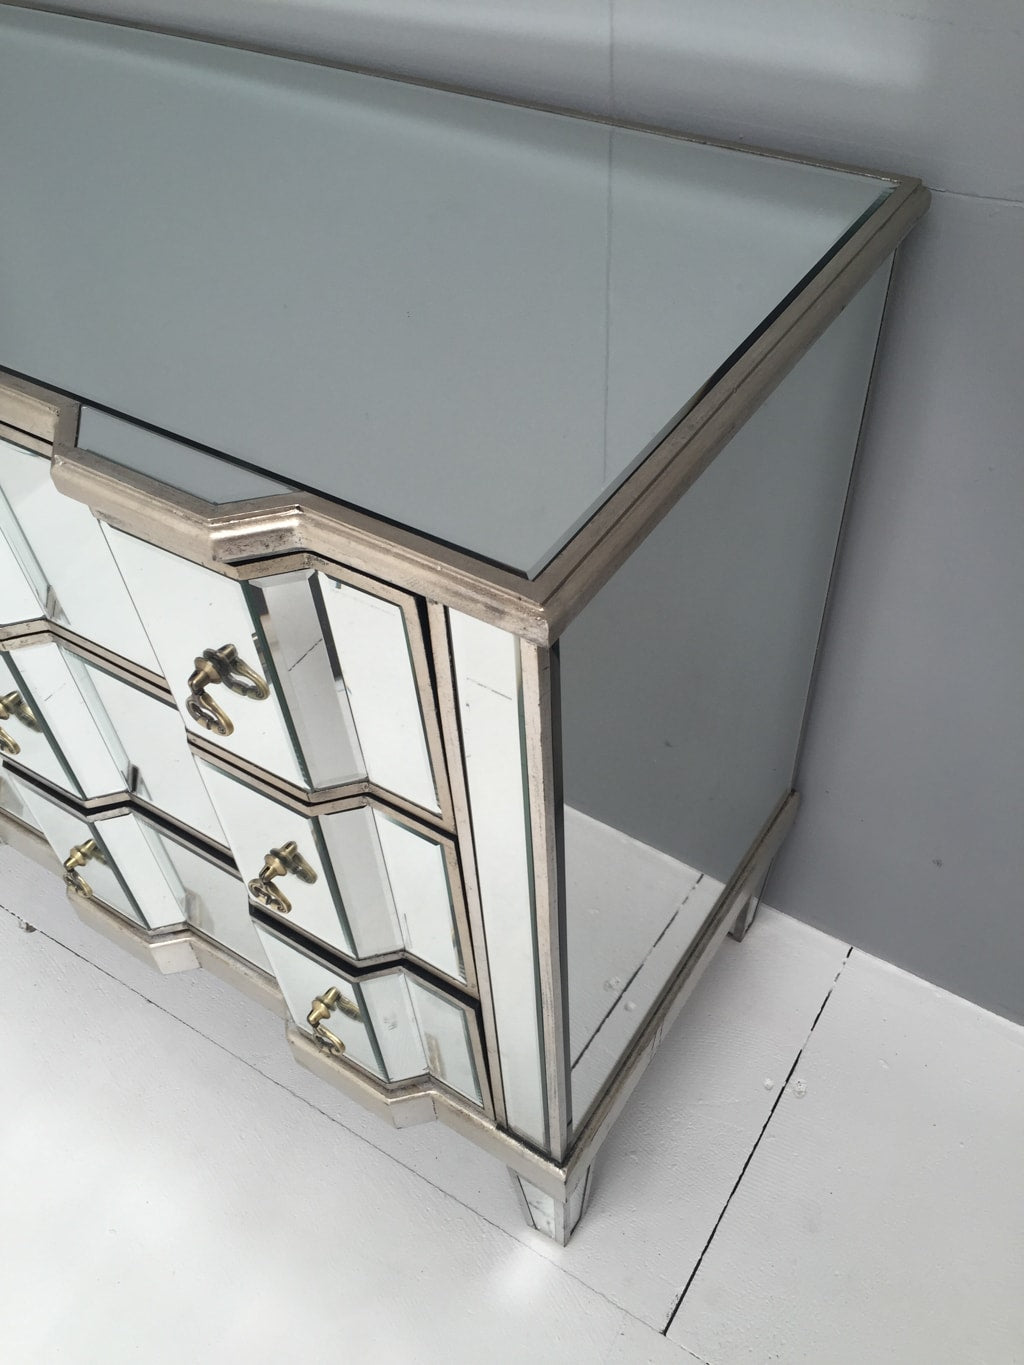 Mirrored chest of drawers, 3 drawers, brass drop handles.